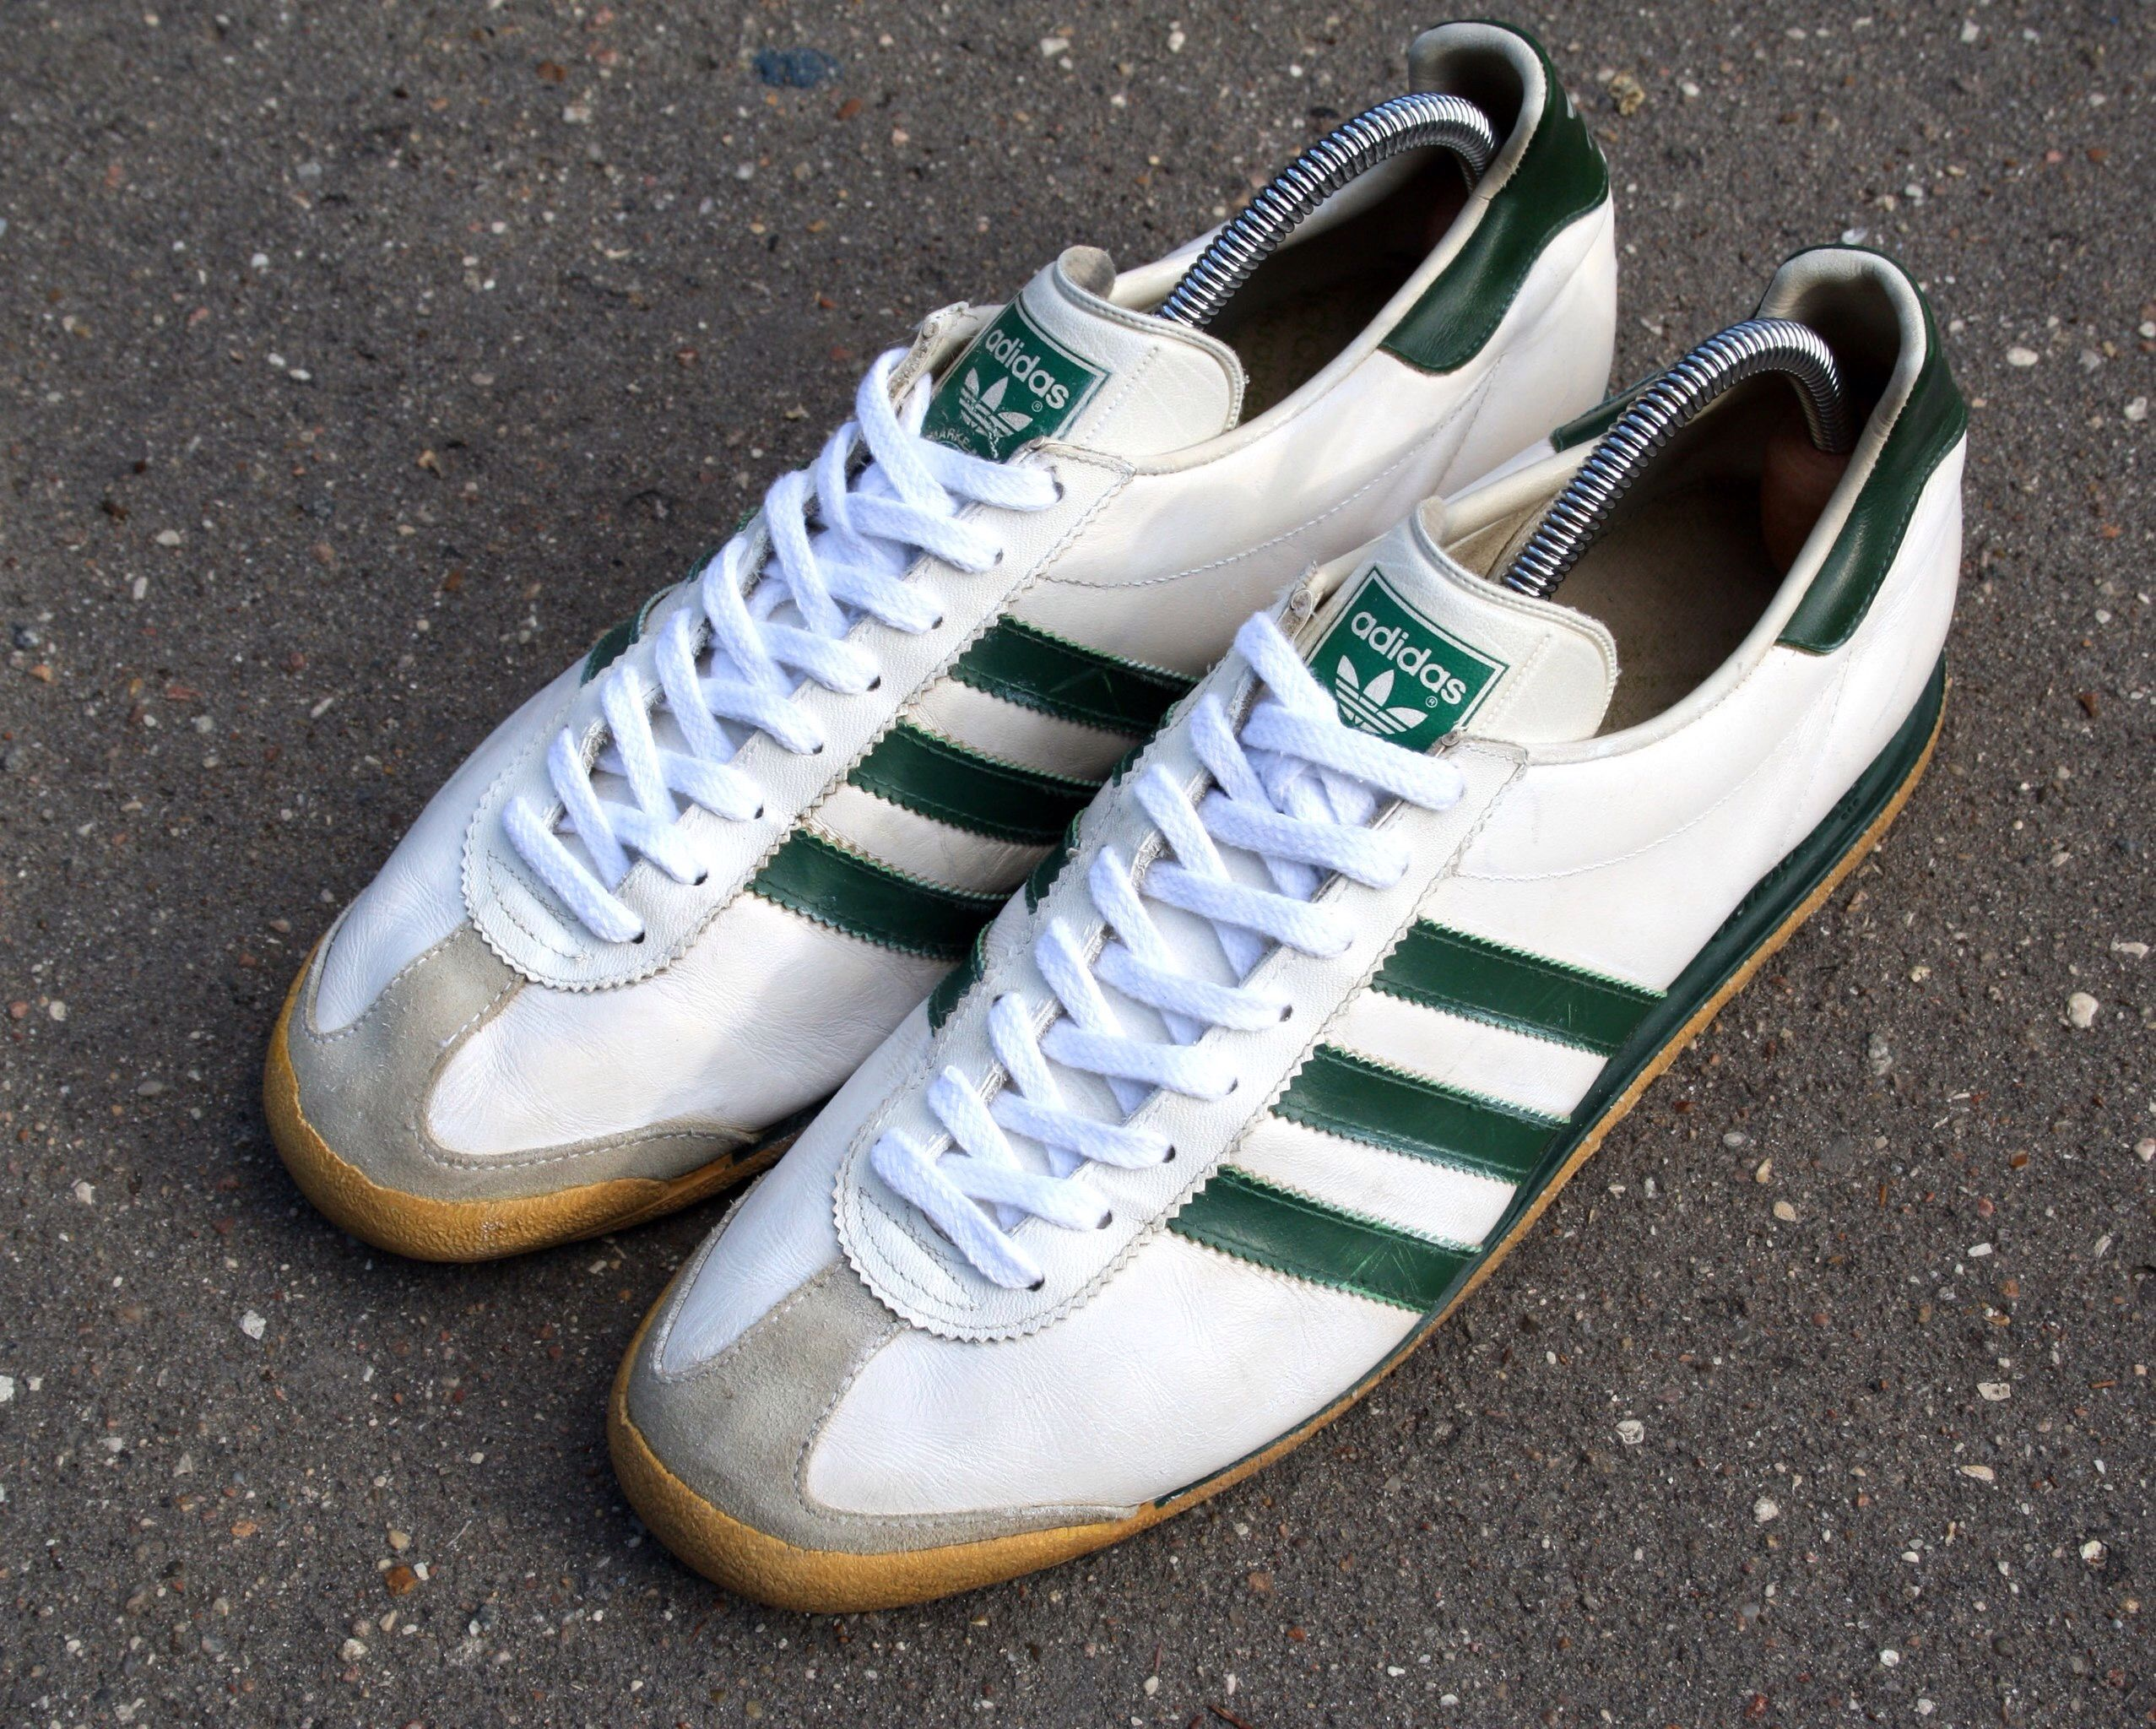 Adidas Rom. Release: 1980s. Made in West Germany. #adiporn #adidasvintage